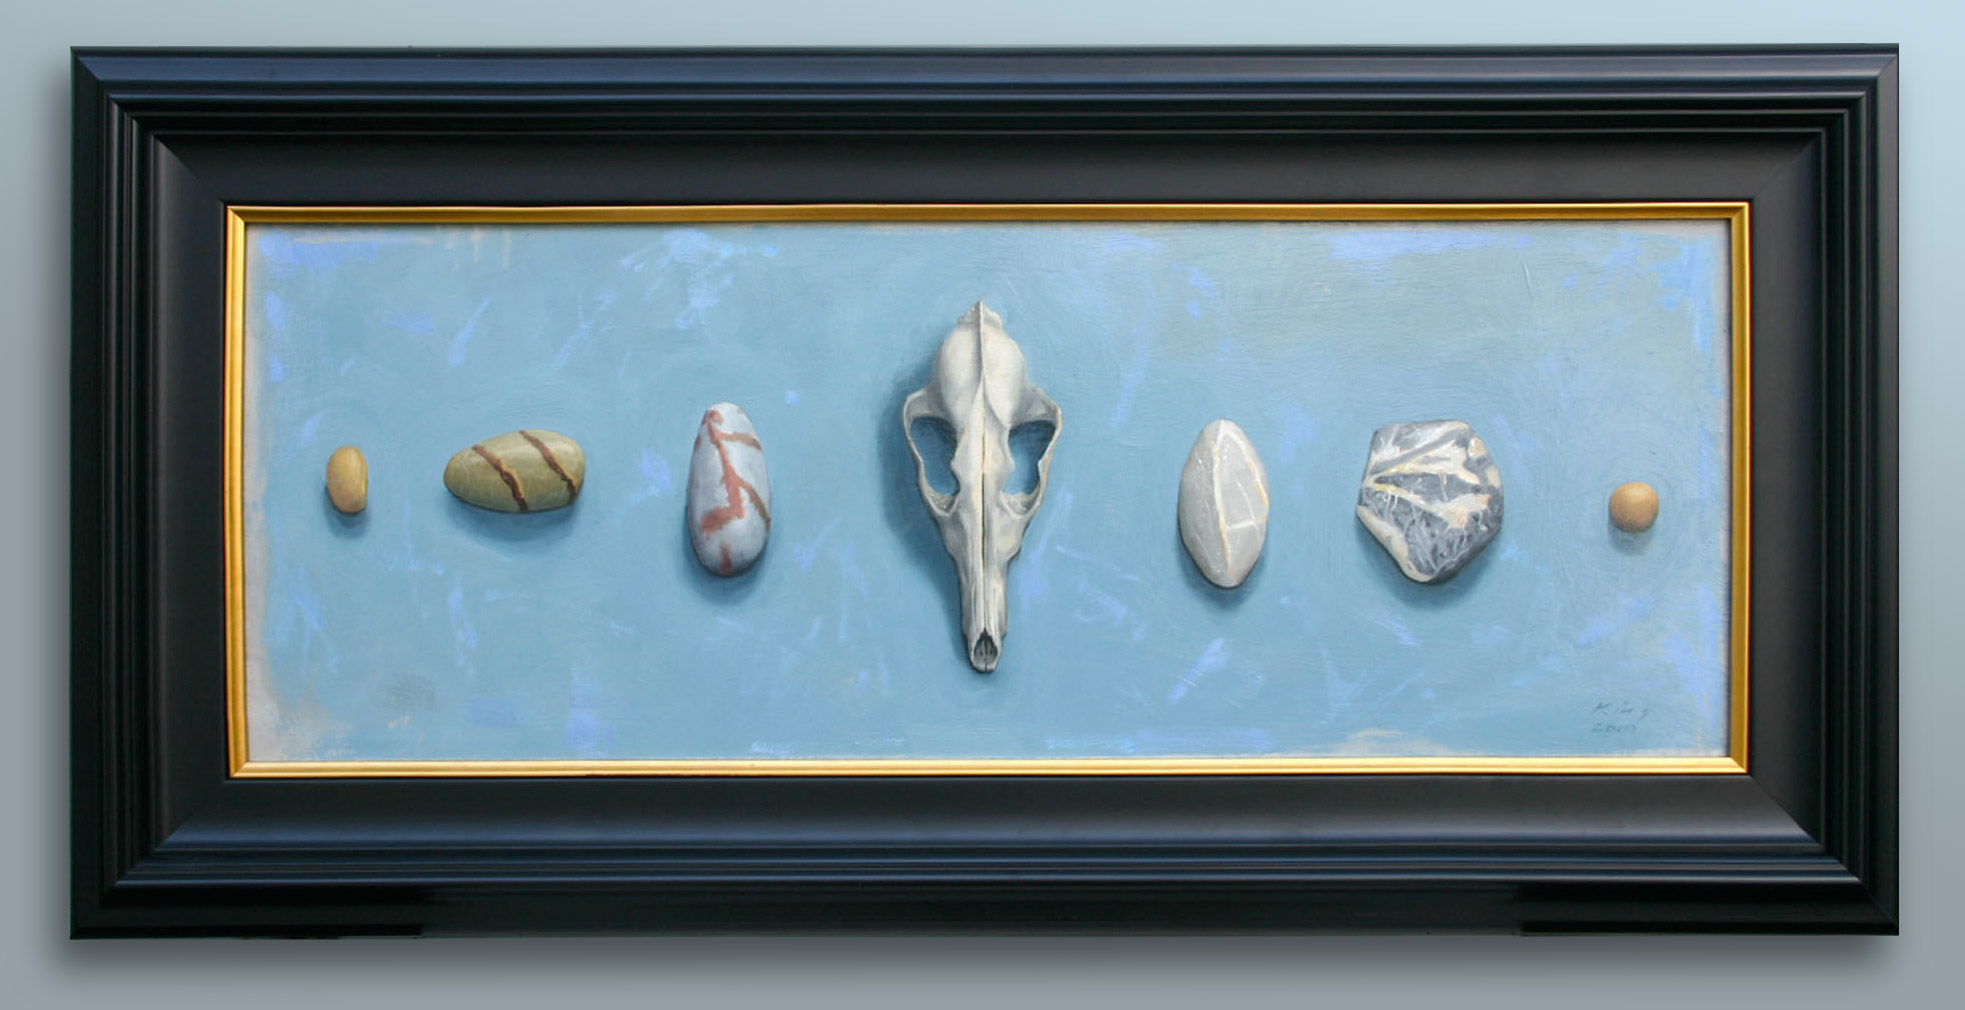 """Geological Time - 10.5"""" x 29.5"""" - oil on board - $1,500.00"""